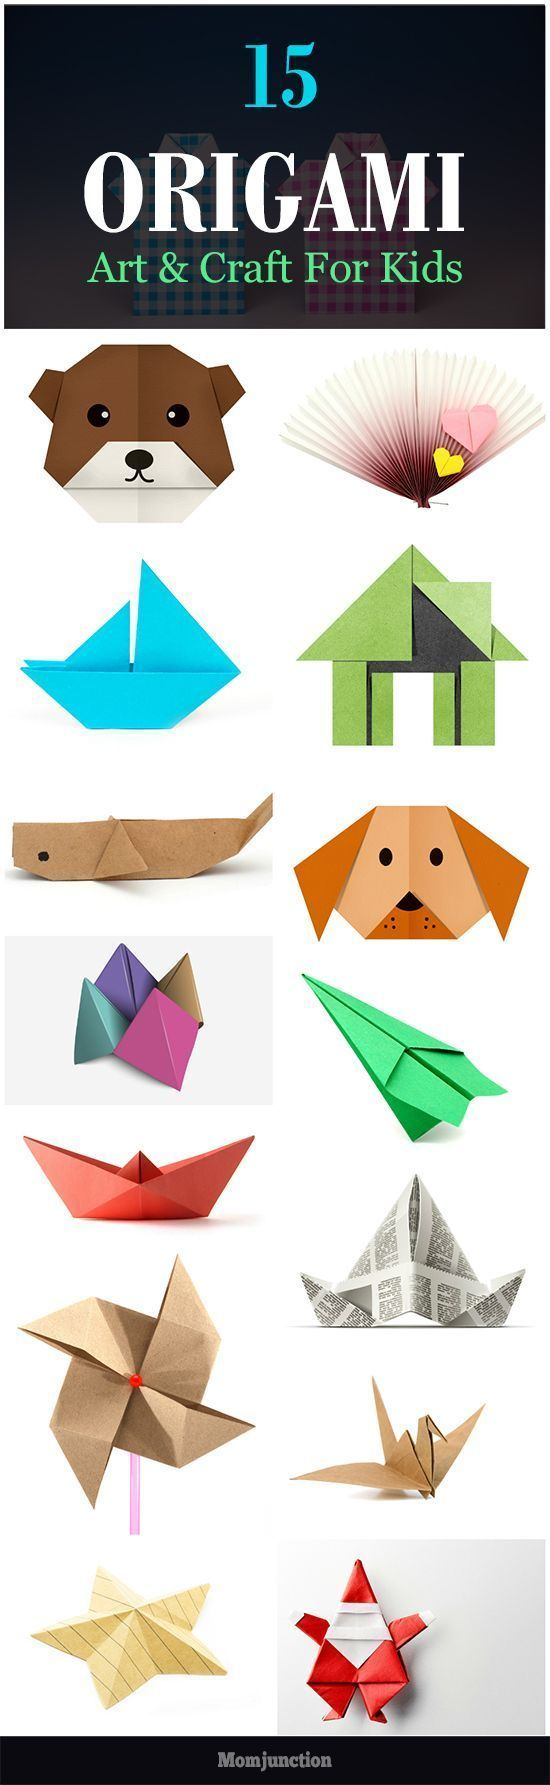 Top 15 Paper Folding Or #Origami #Art & Craft For #Kids: Your kid can enjoy this craft activity without the extensive use of glue and scissors. Here are top 15 origami art for your little creative genius.: